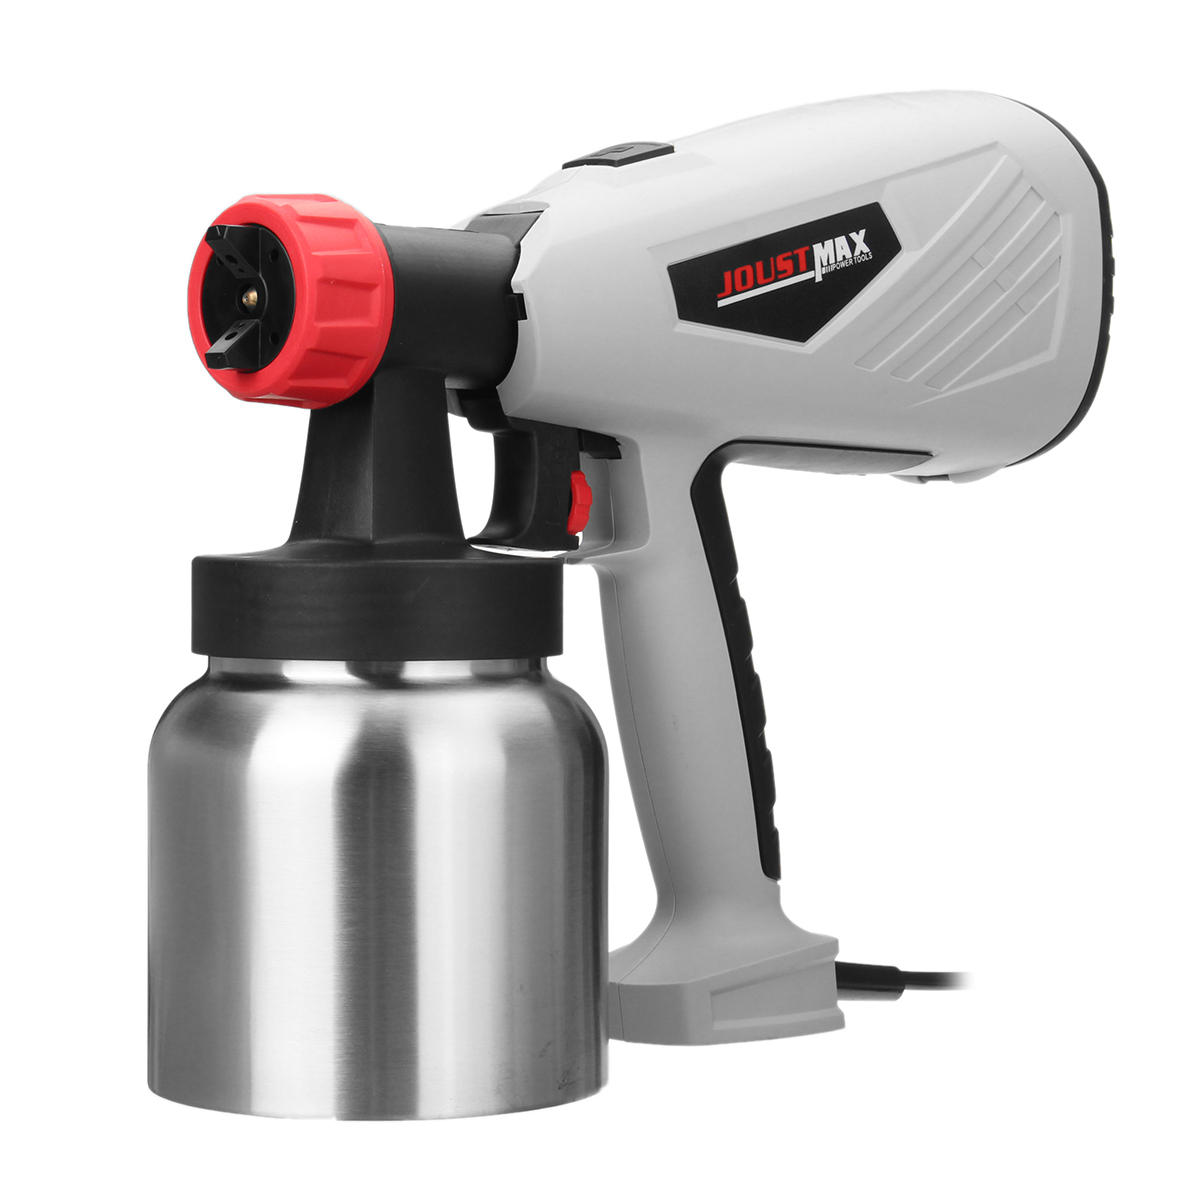 Electric Easy Spray Paint Sprayer Home Car Painting 1.8 +2.5mm Adjustable Nozzle - 4